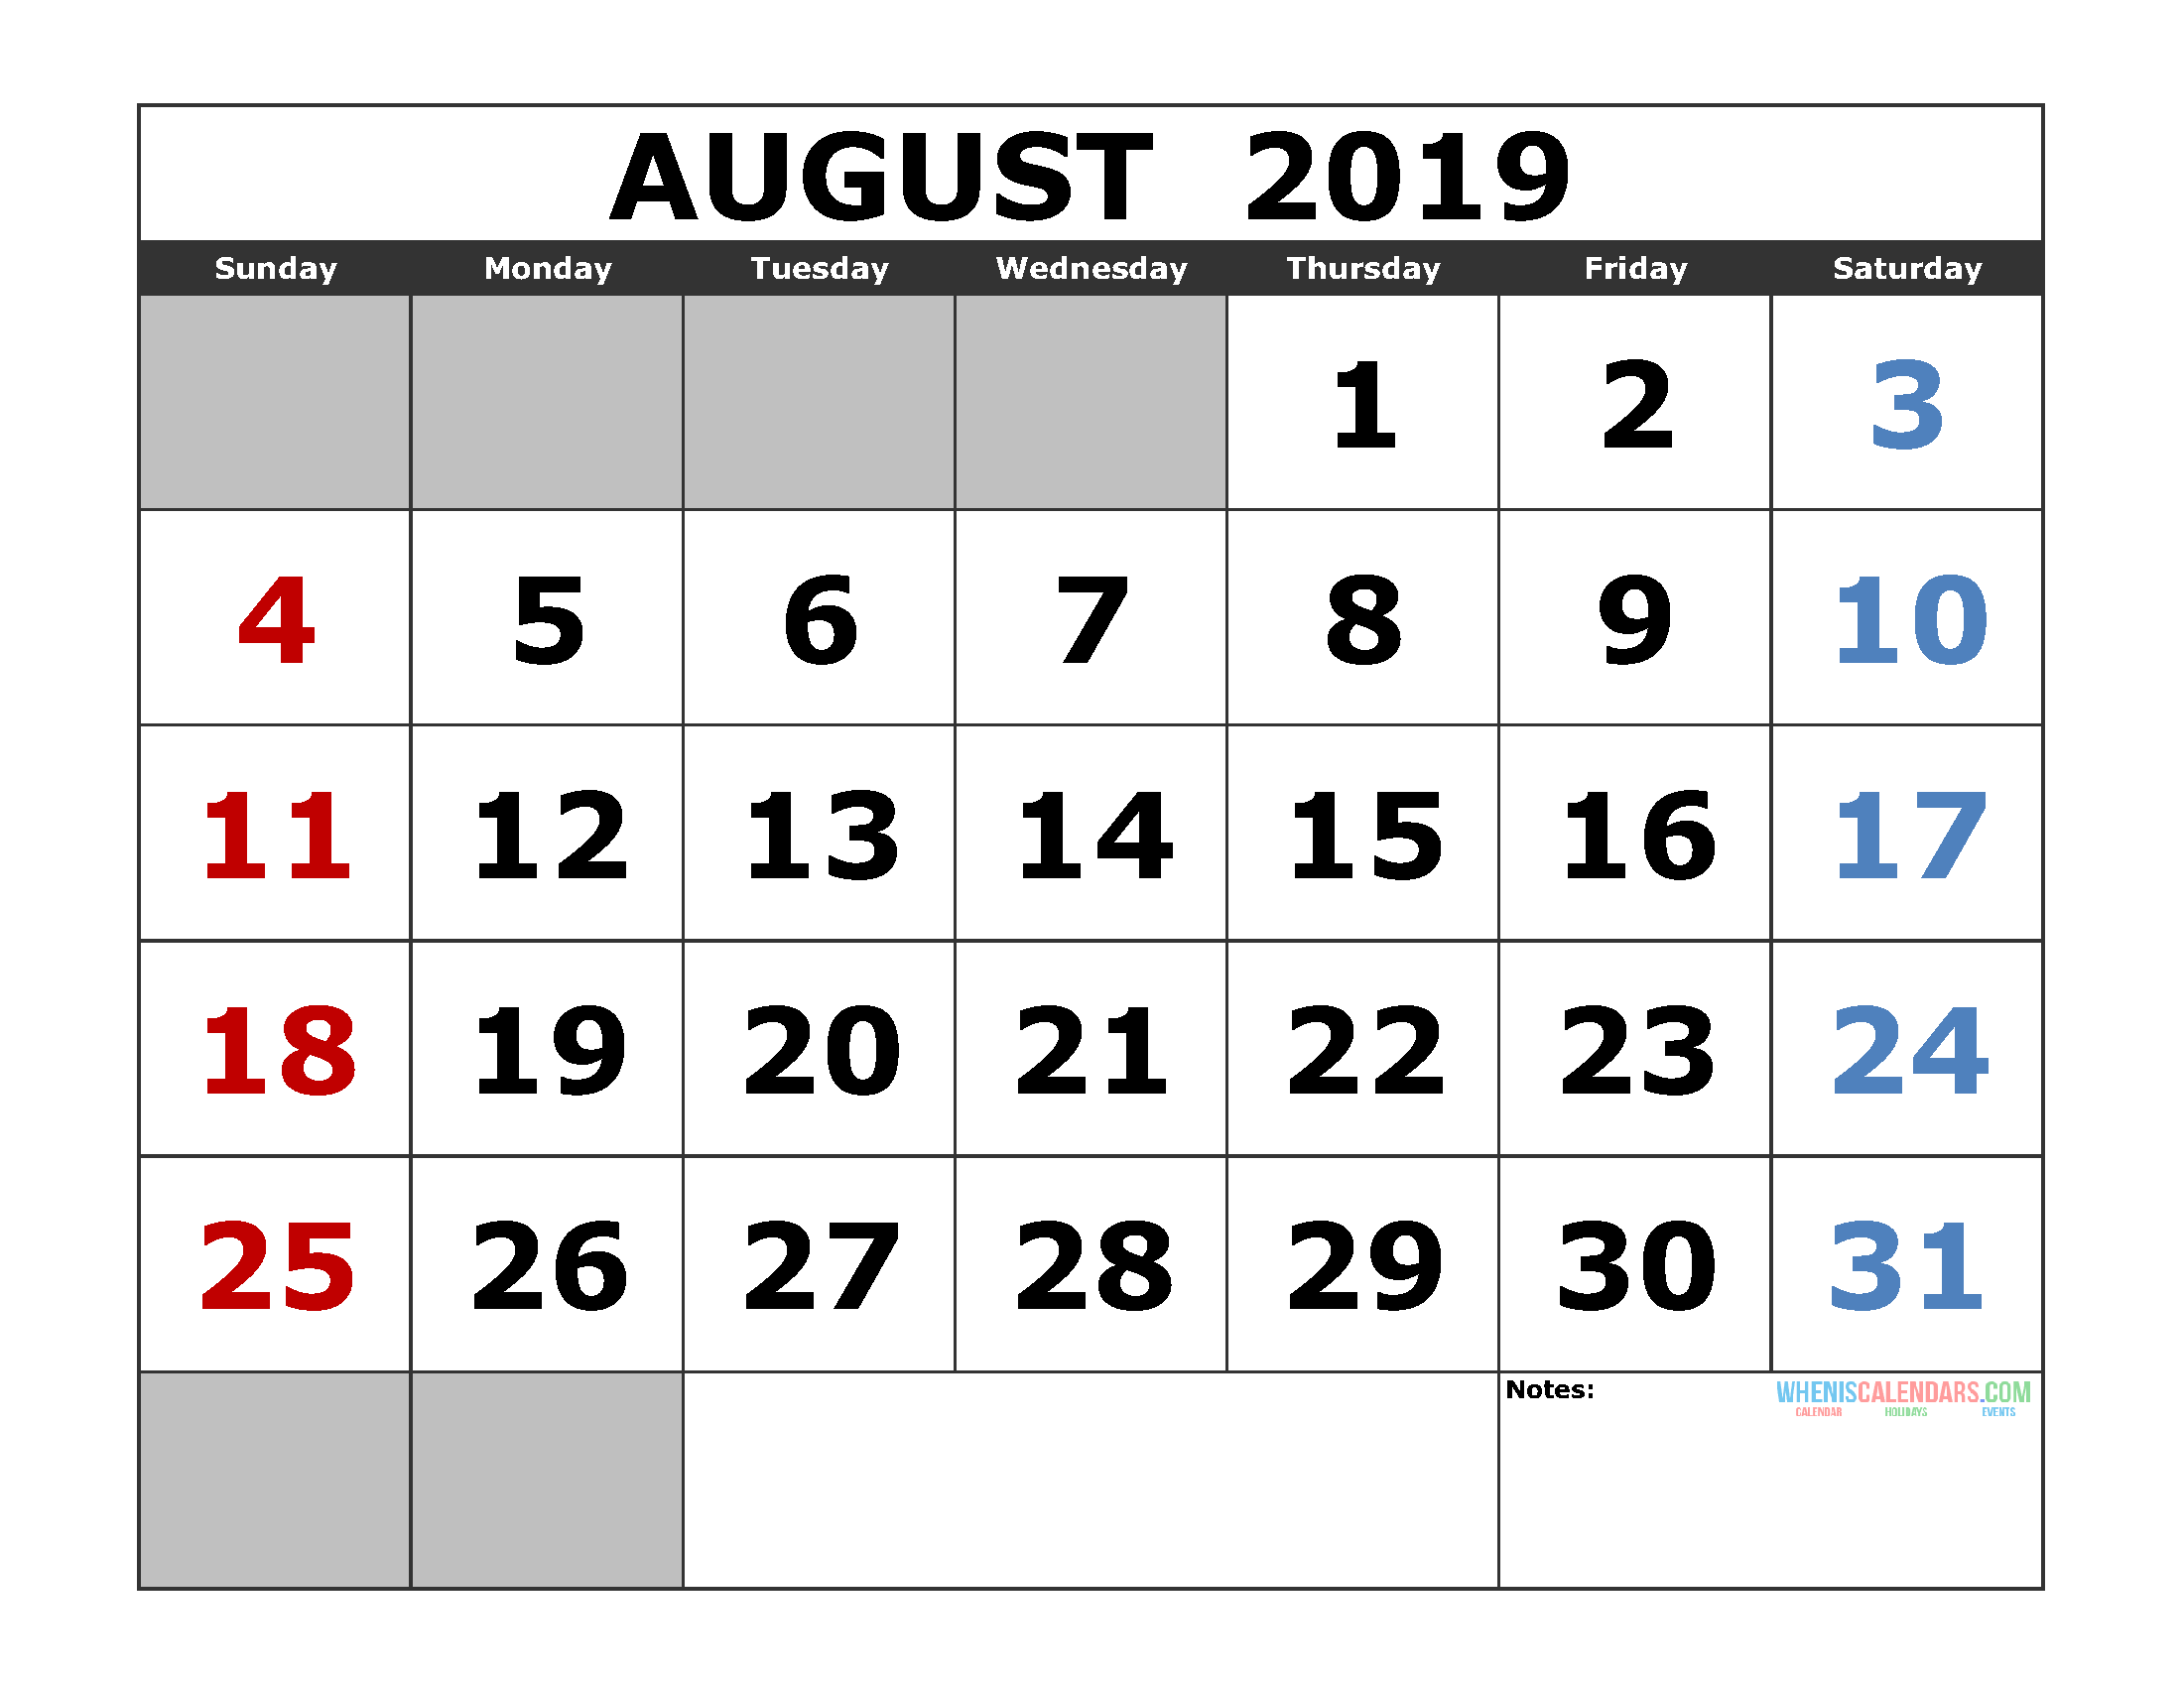 Free August 2019 Printable Calendar Template US. Edition (the first of the week as Sunday)